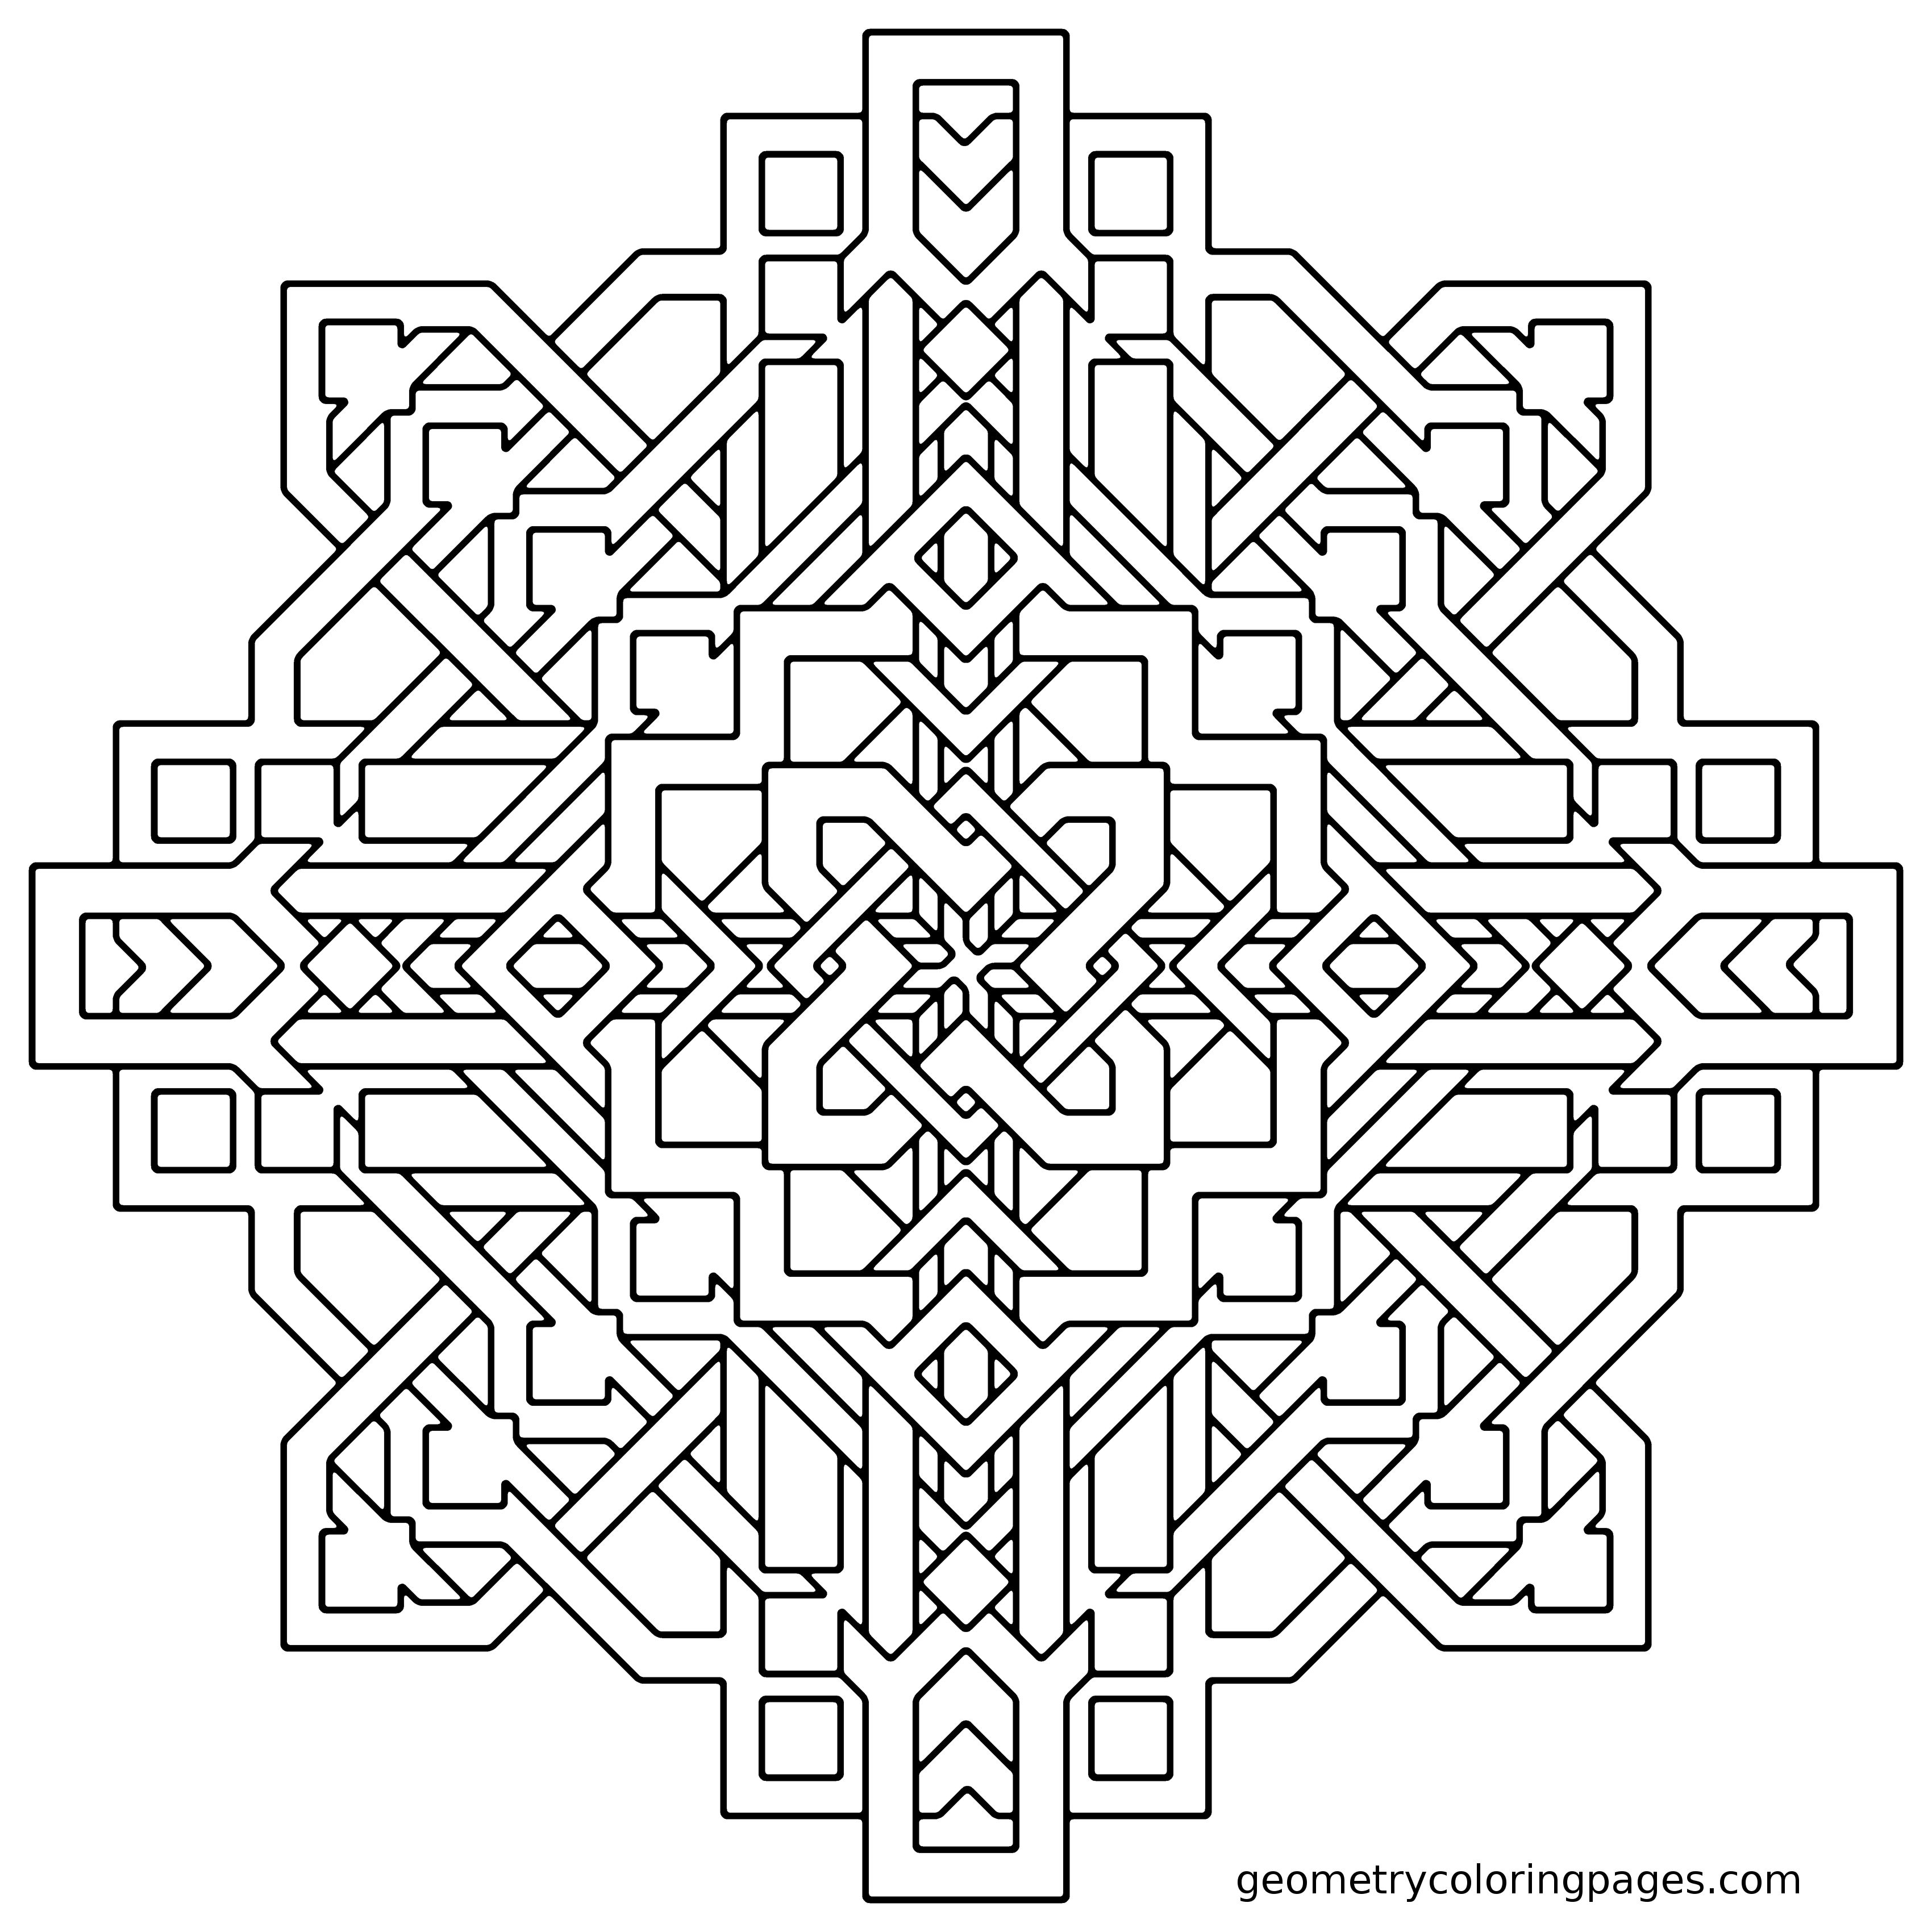 Frank W Mandala Coloring Page From